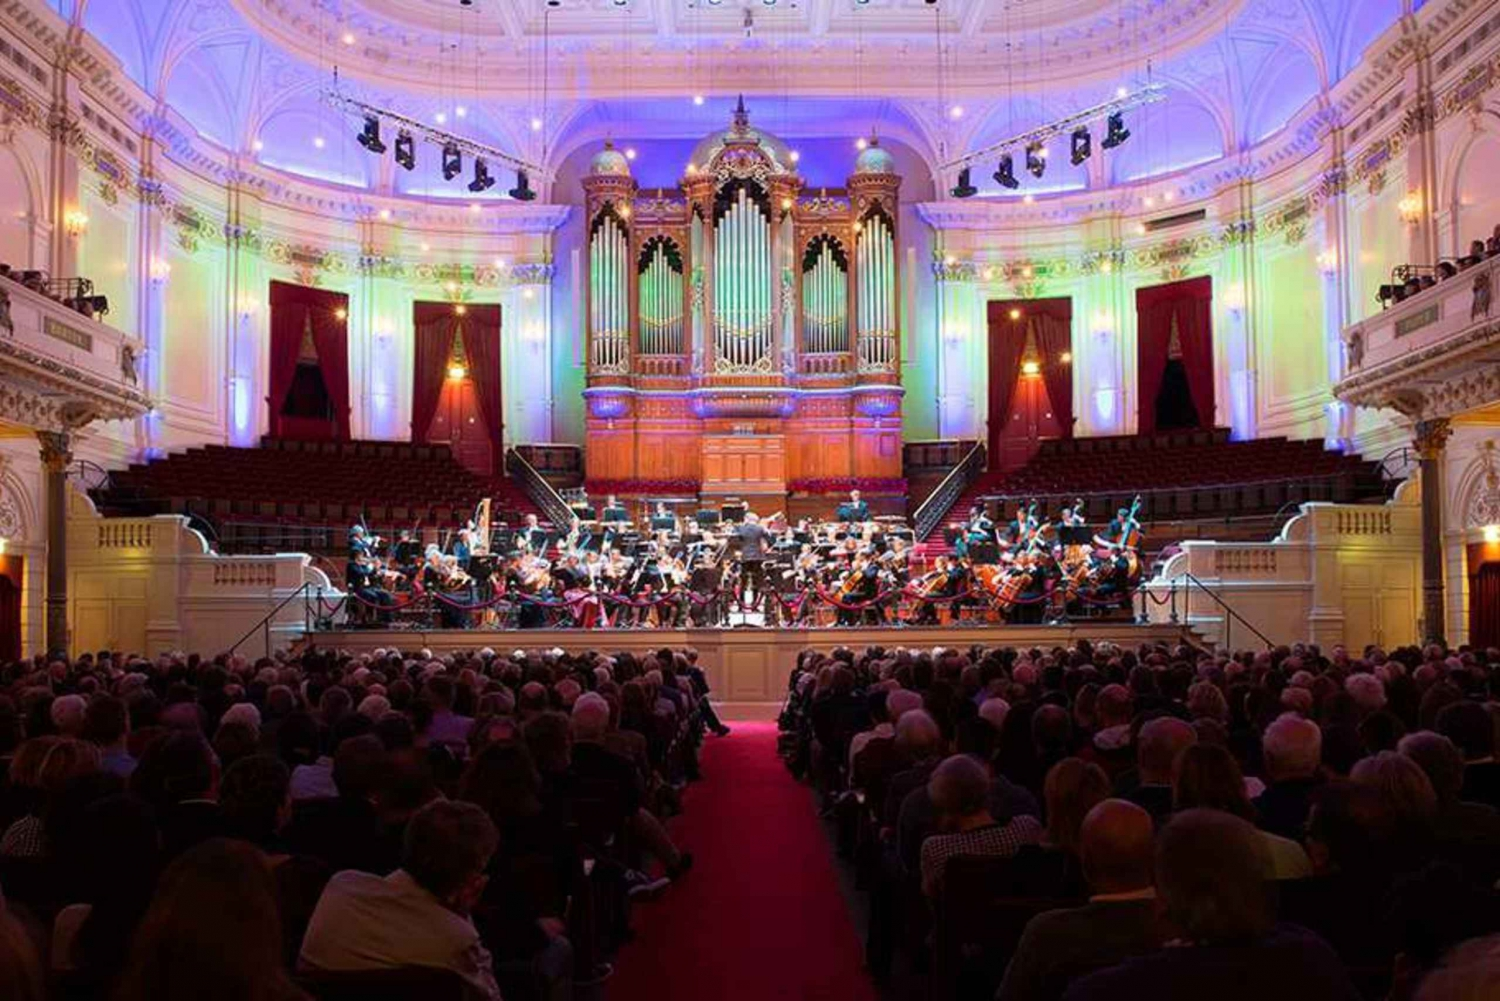 Concertgebouw Concert Ticket: Main Hall or Recital Hall